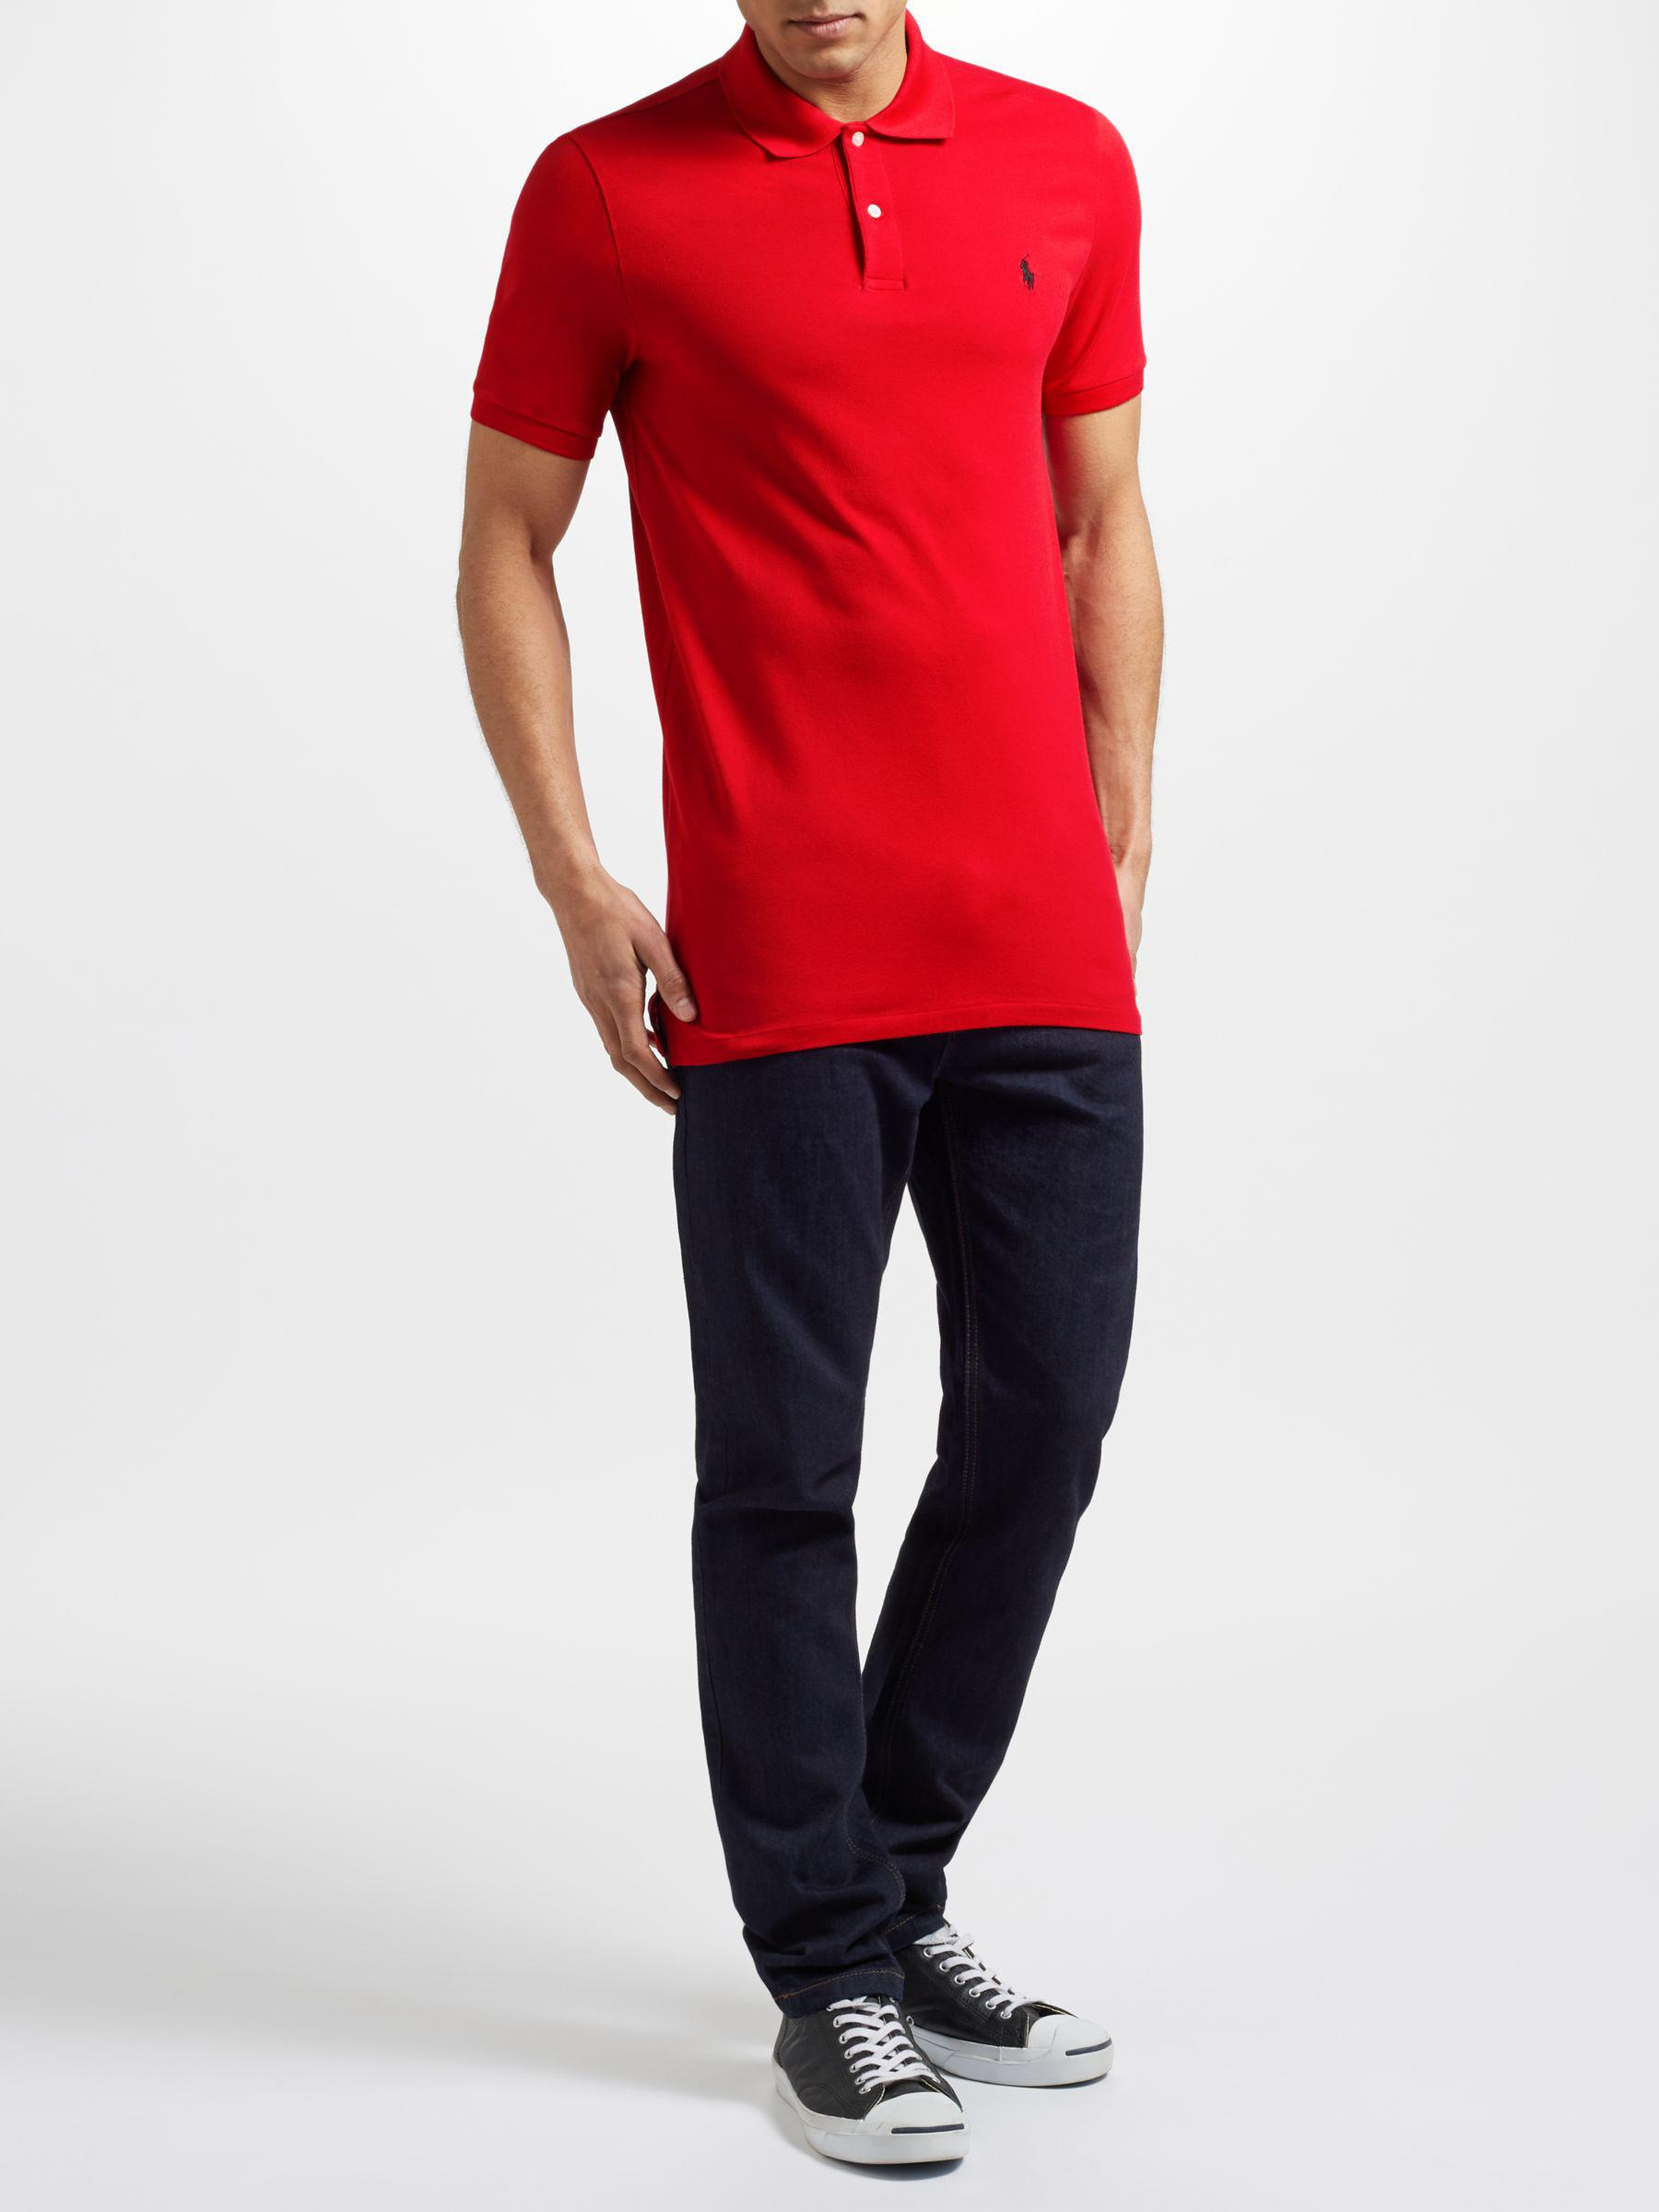 4d441d101 Ralph Lauren Polo Golf By Pro-fit Polo Shirt in Red for Men - Lyst